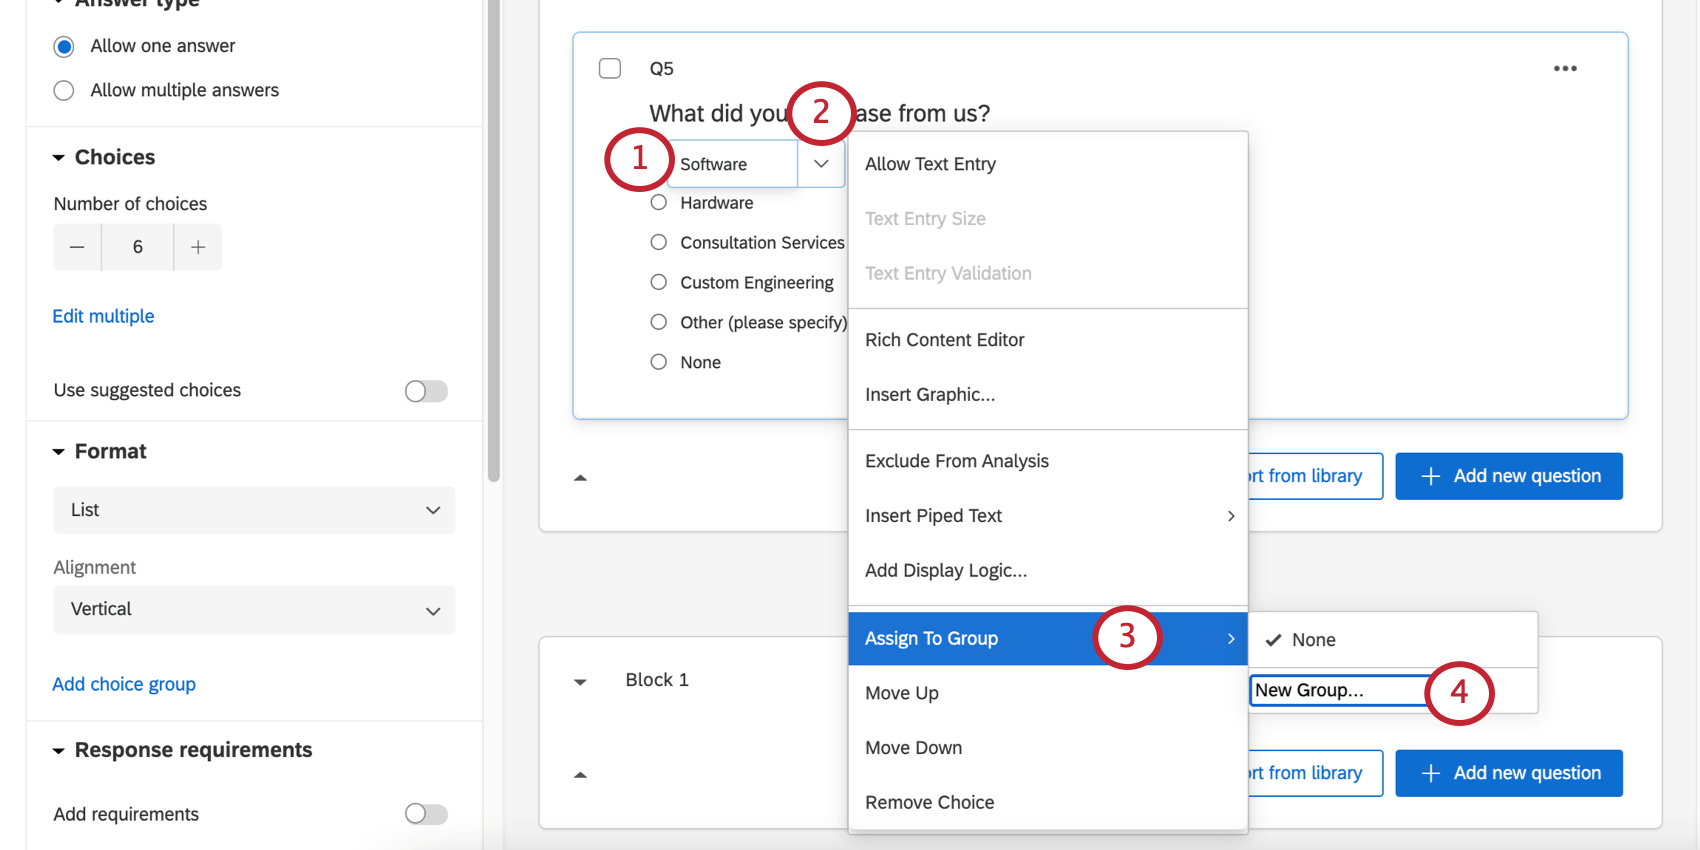 Opening a series of menus from the blue dropdown